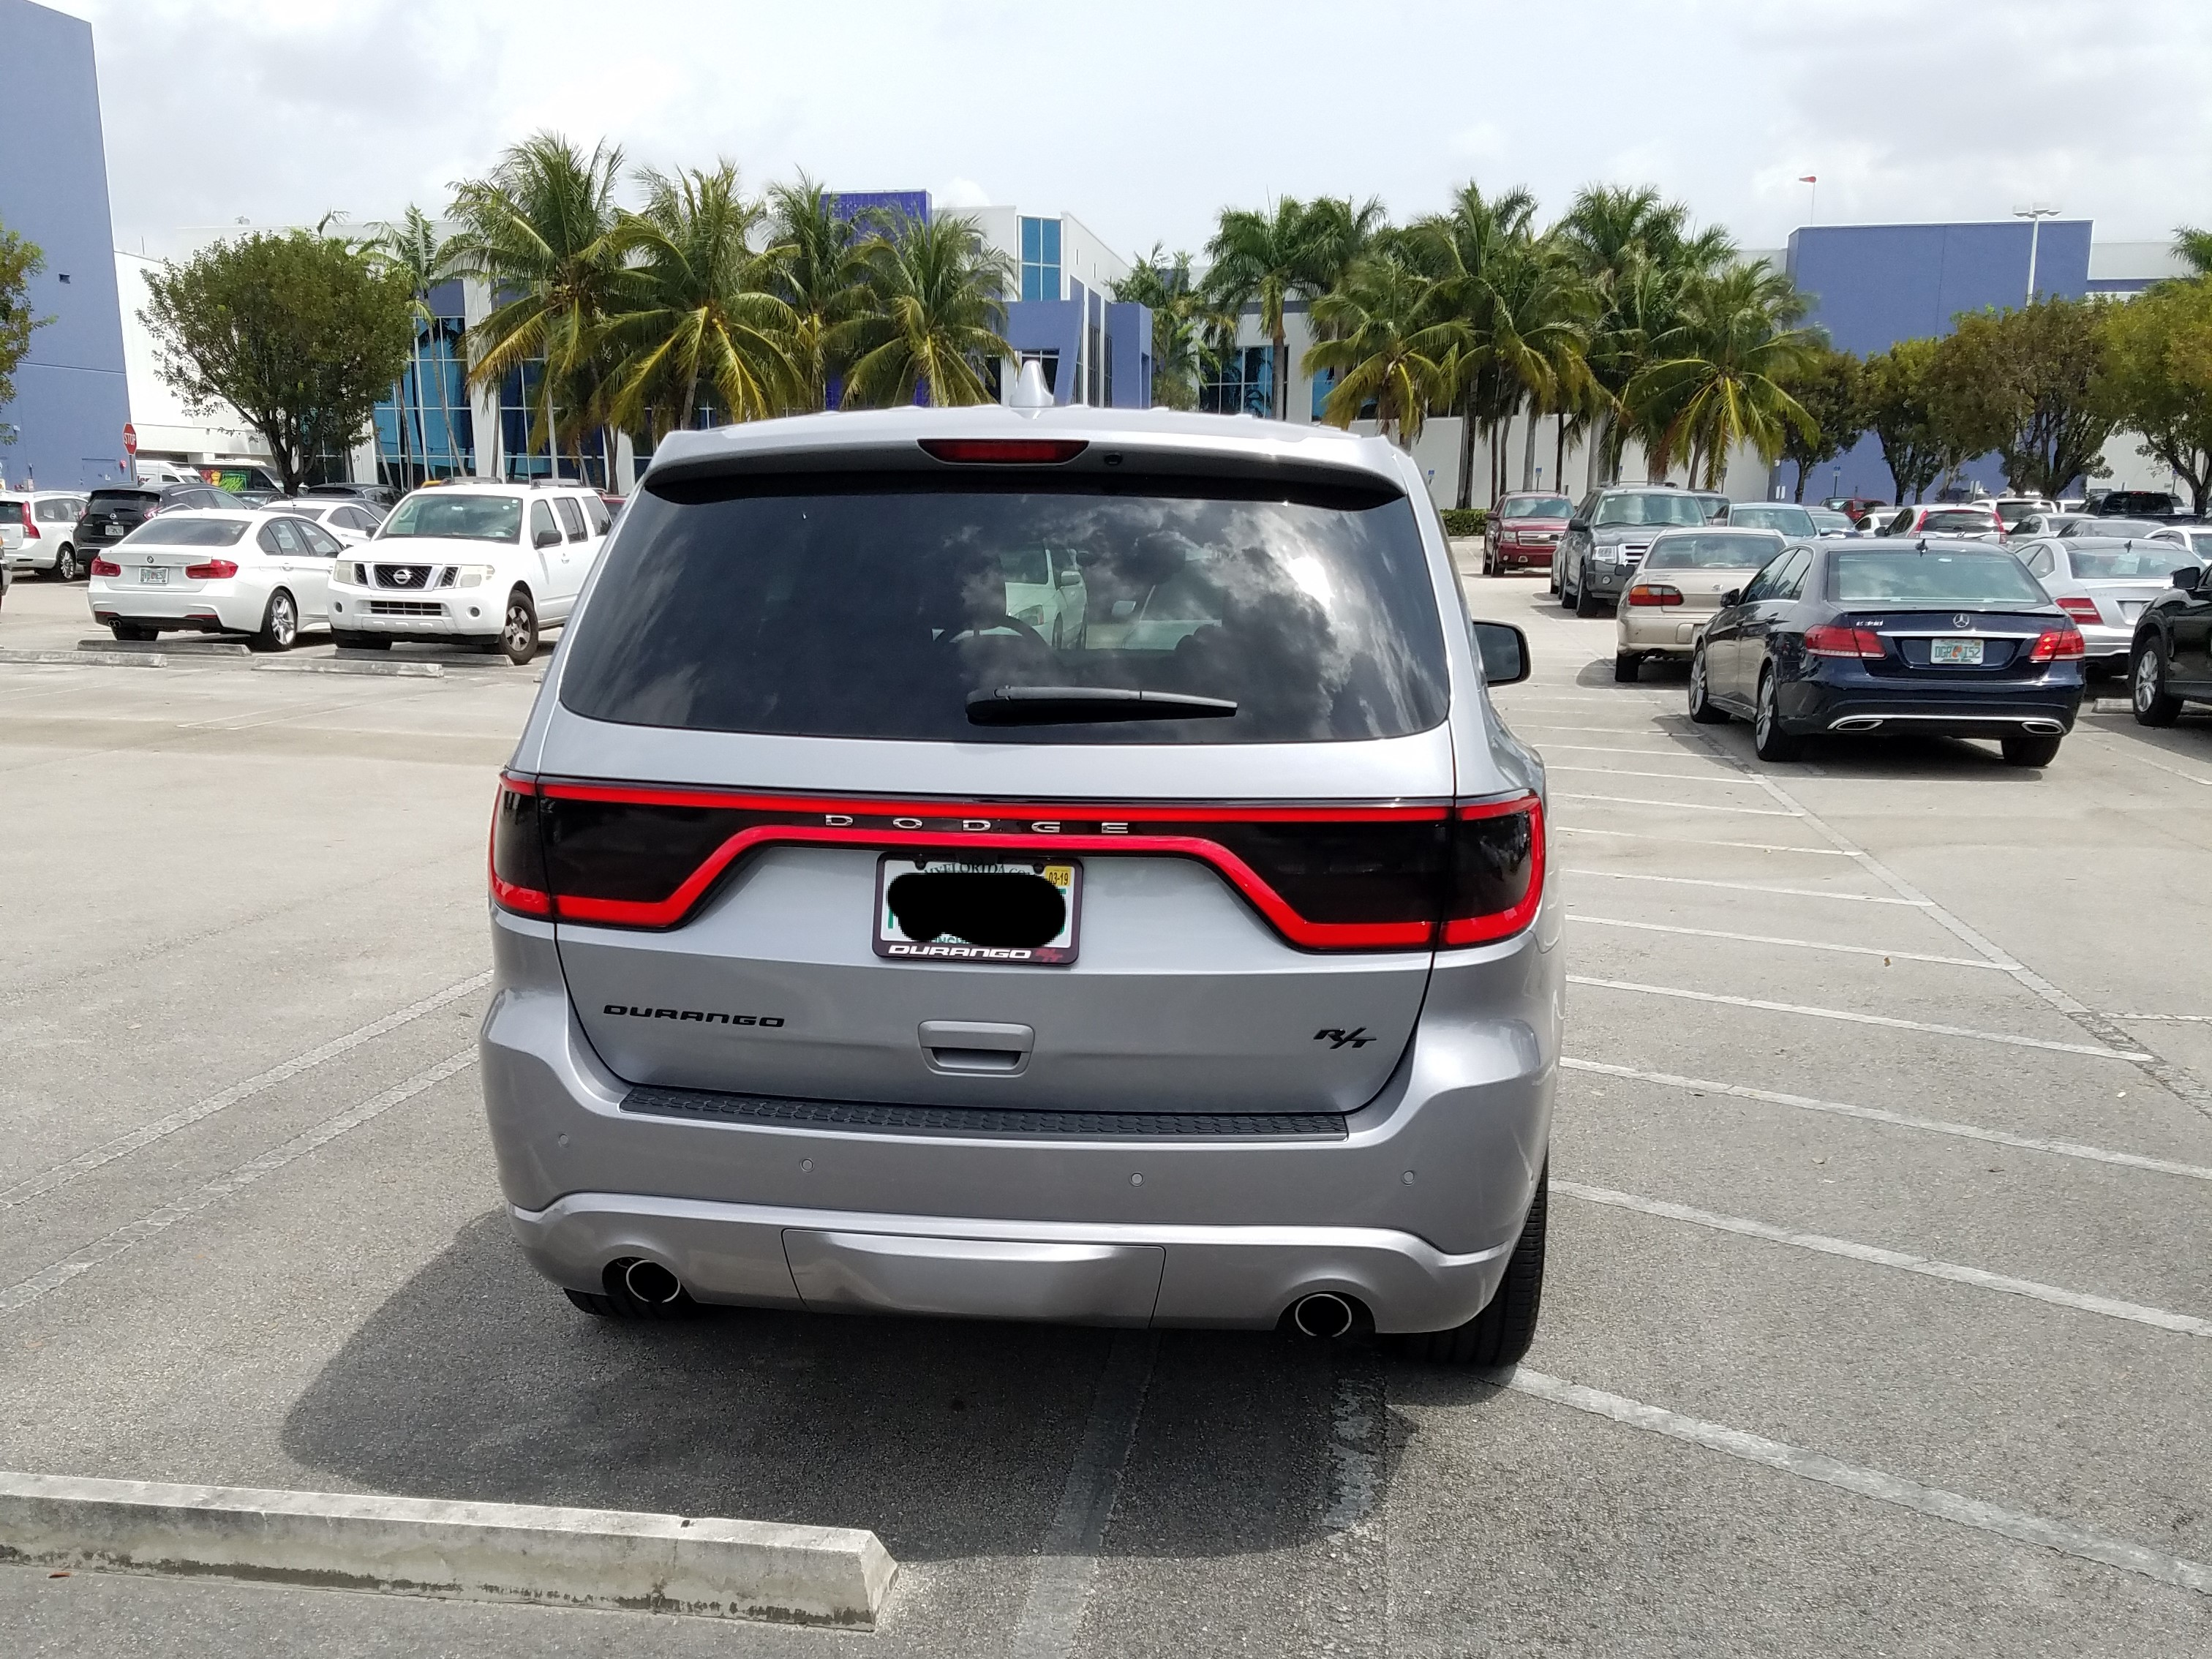 Experience With Luxe Tail Light Tint 20170406 134435 Jpg